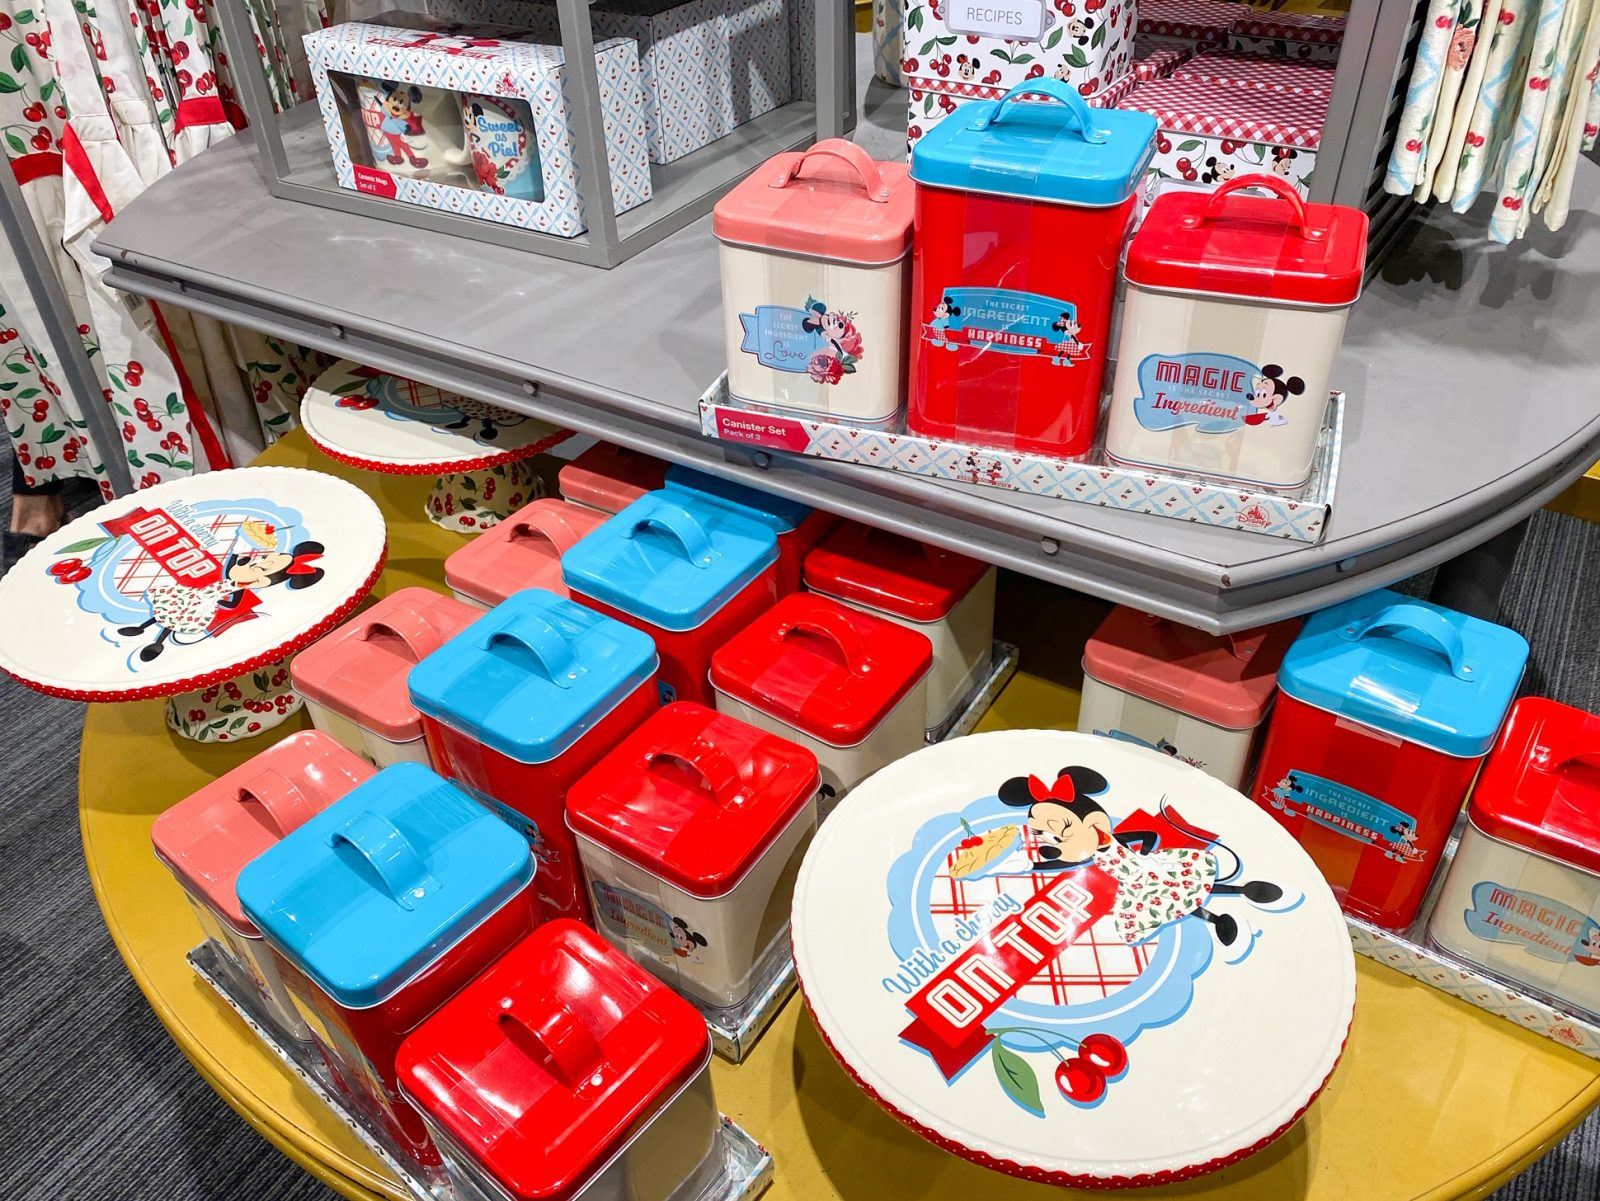 Disney Souvenirs Housewares and Kitchenware